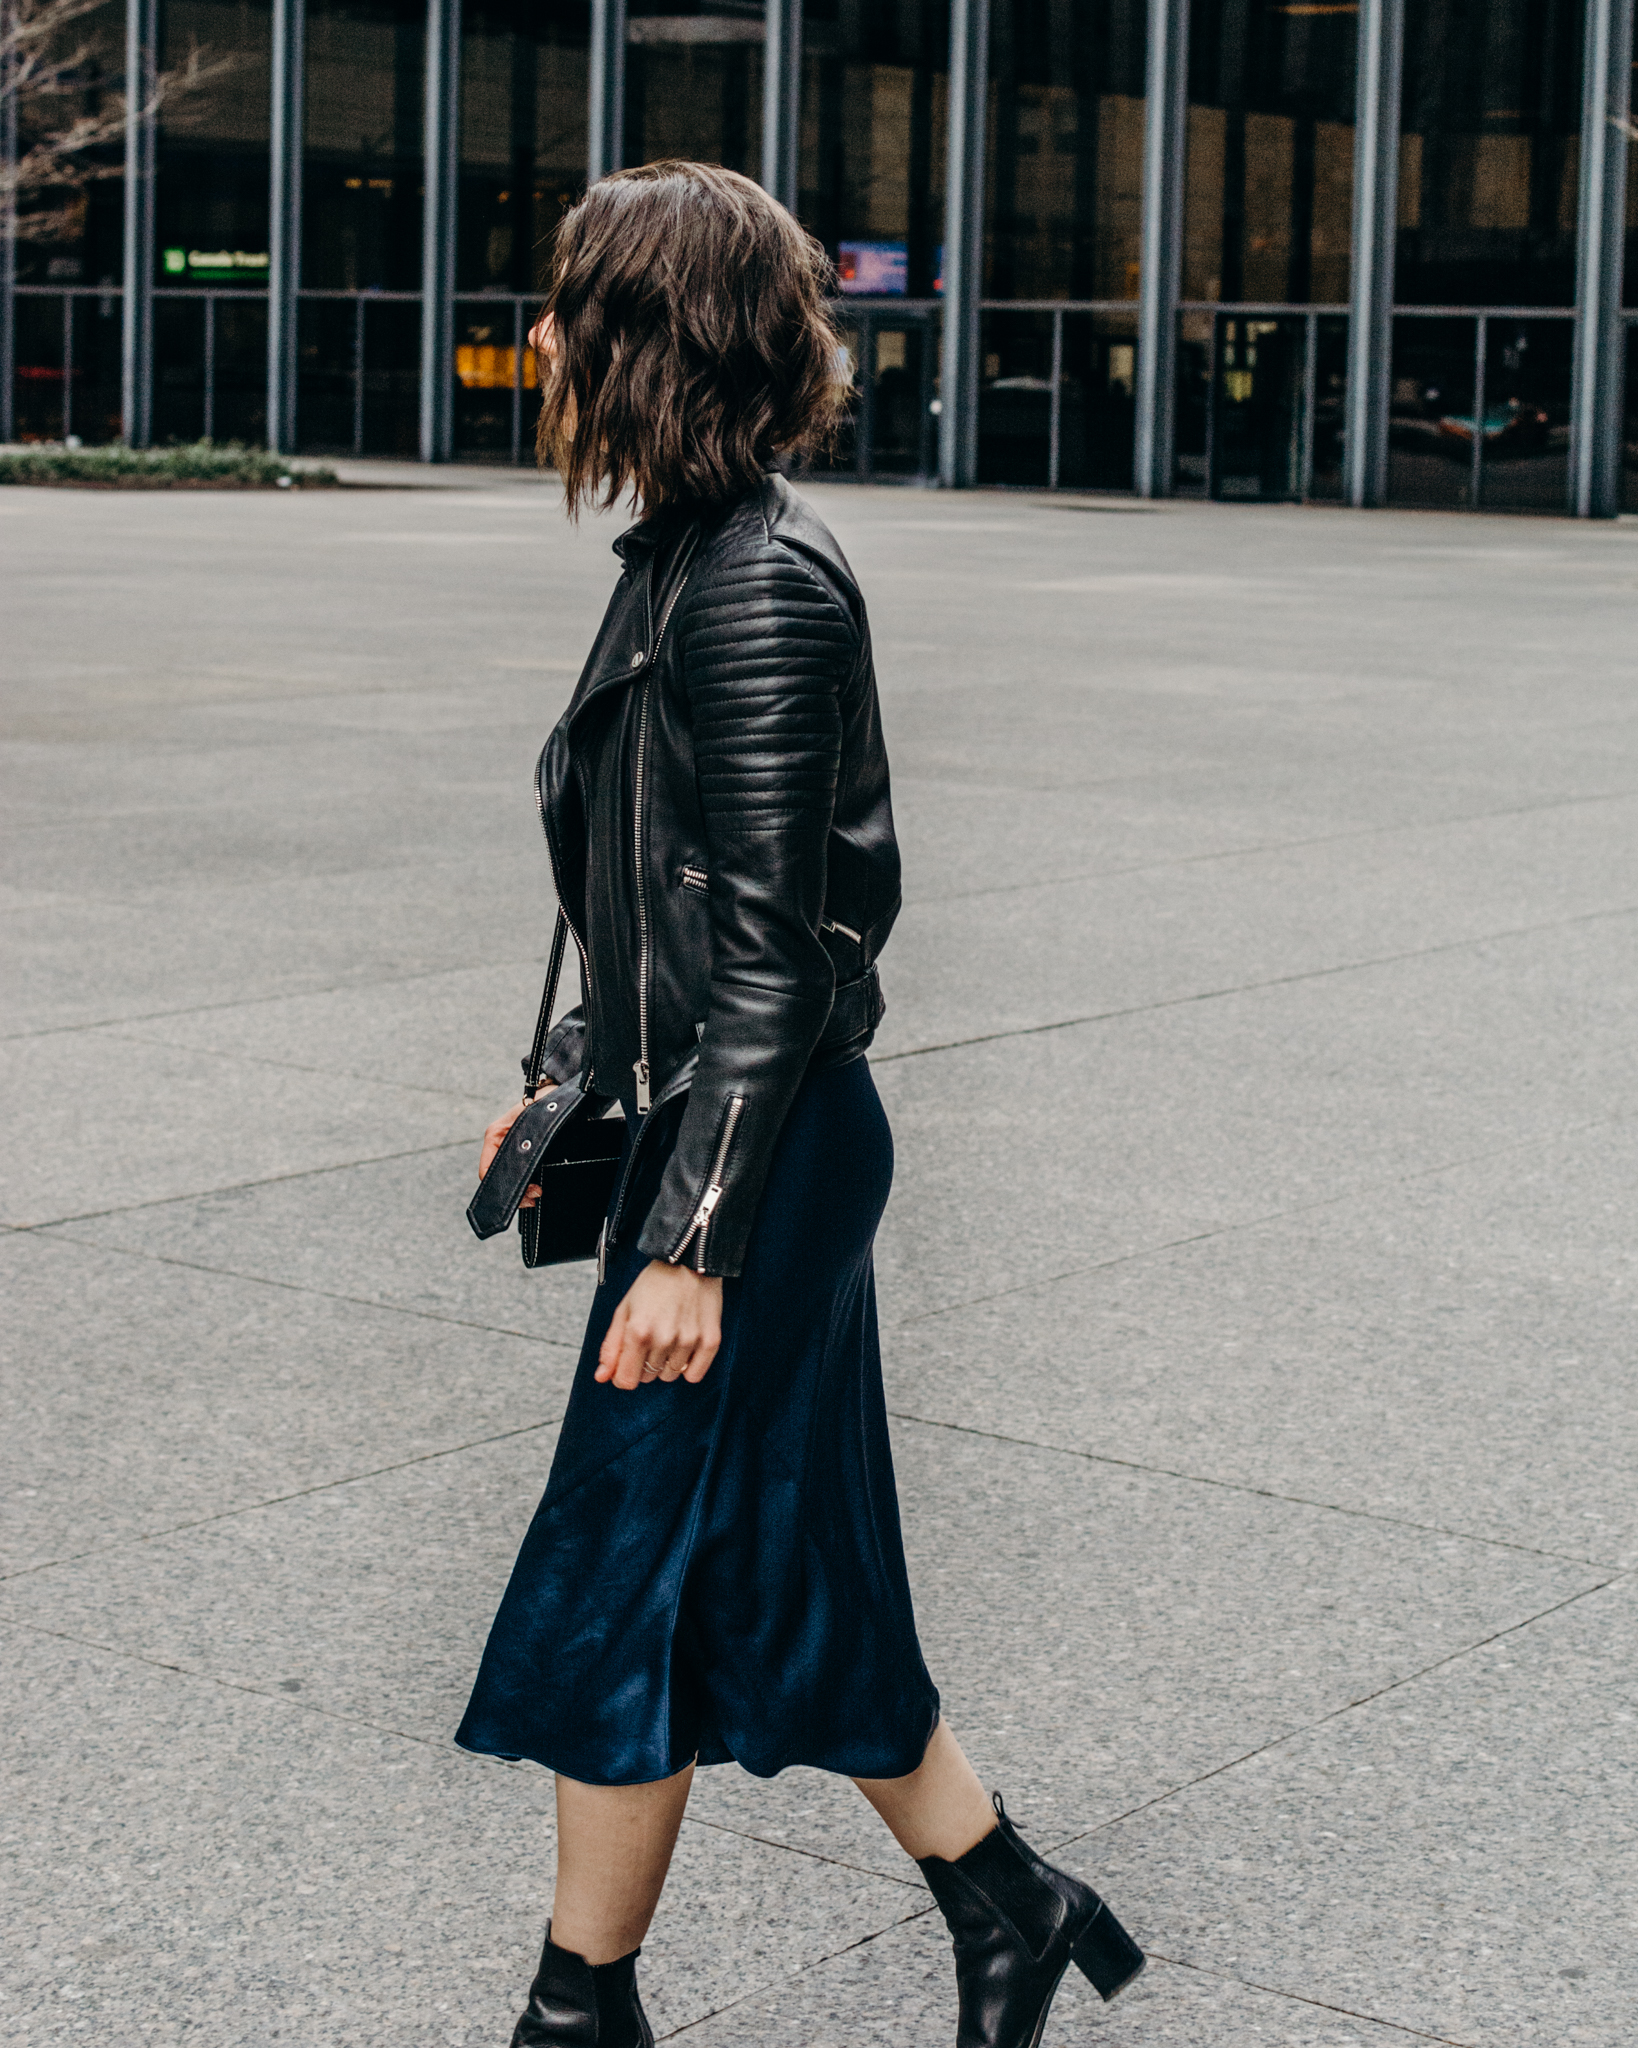 aritzia christine slip dress silk slip dress style apotheca fashion blogger toronto blogger toronto style